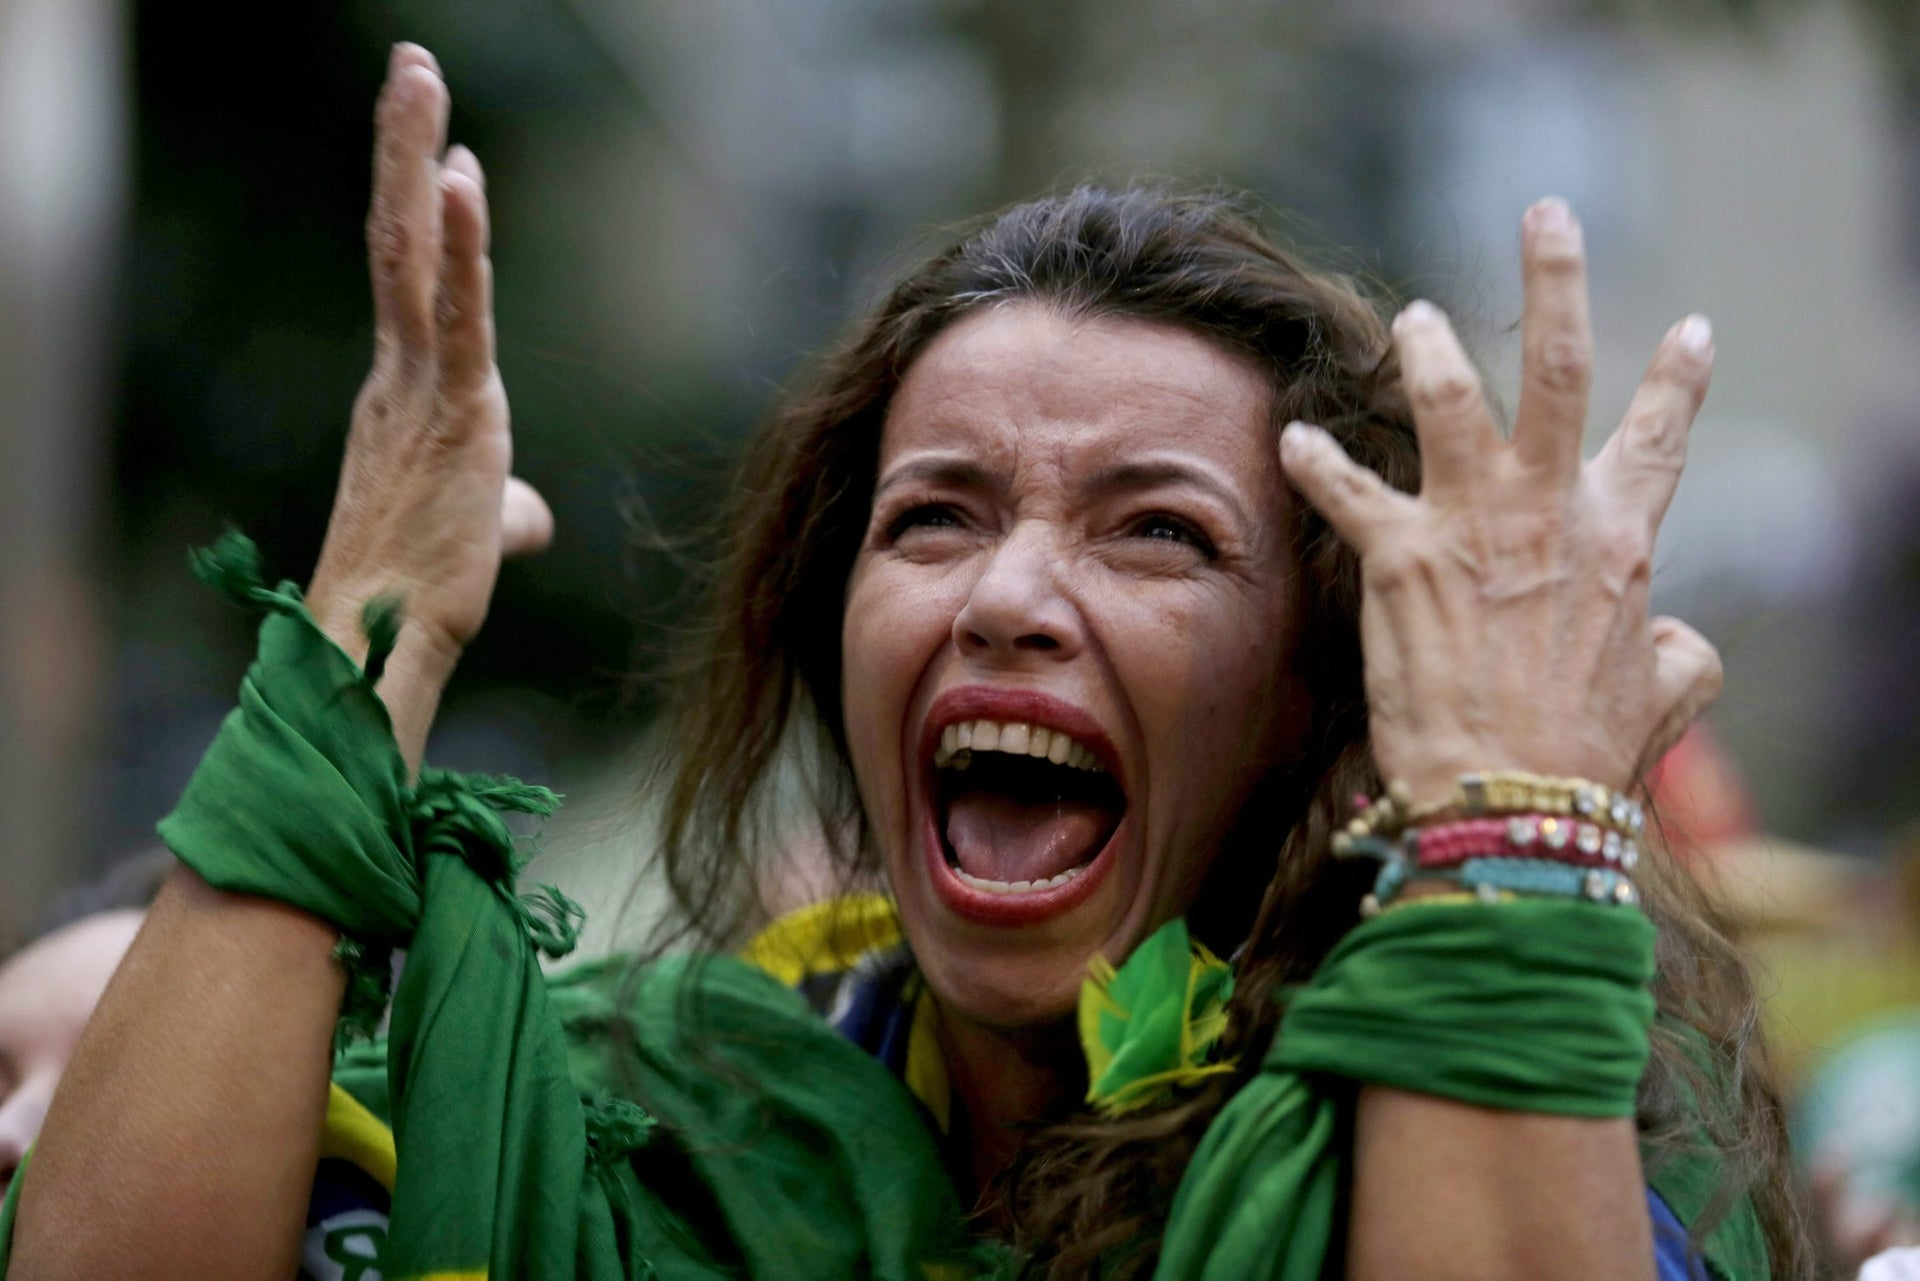 A Brazil soccer fan screaming as Germany defeats her team 7-1 in a semifinal World Cup match, July 2014.